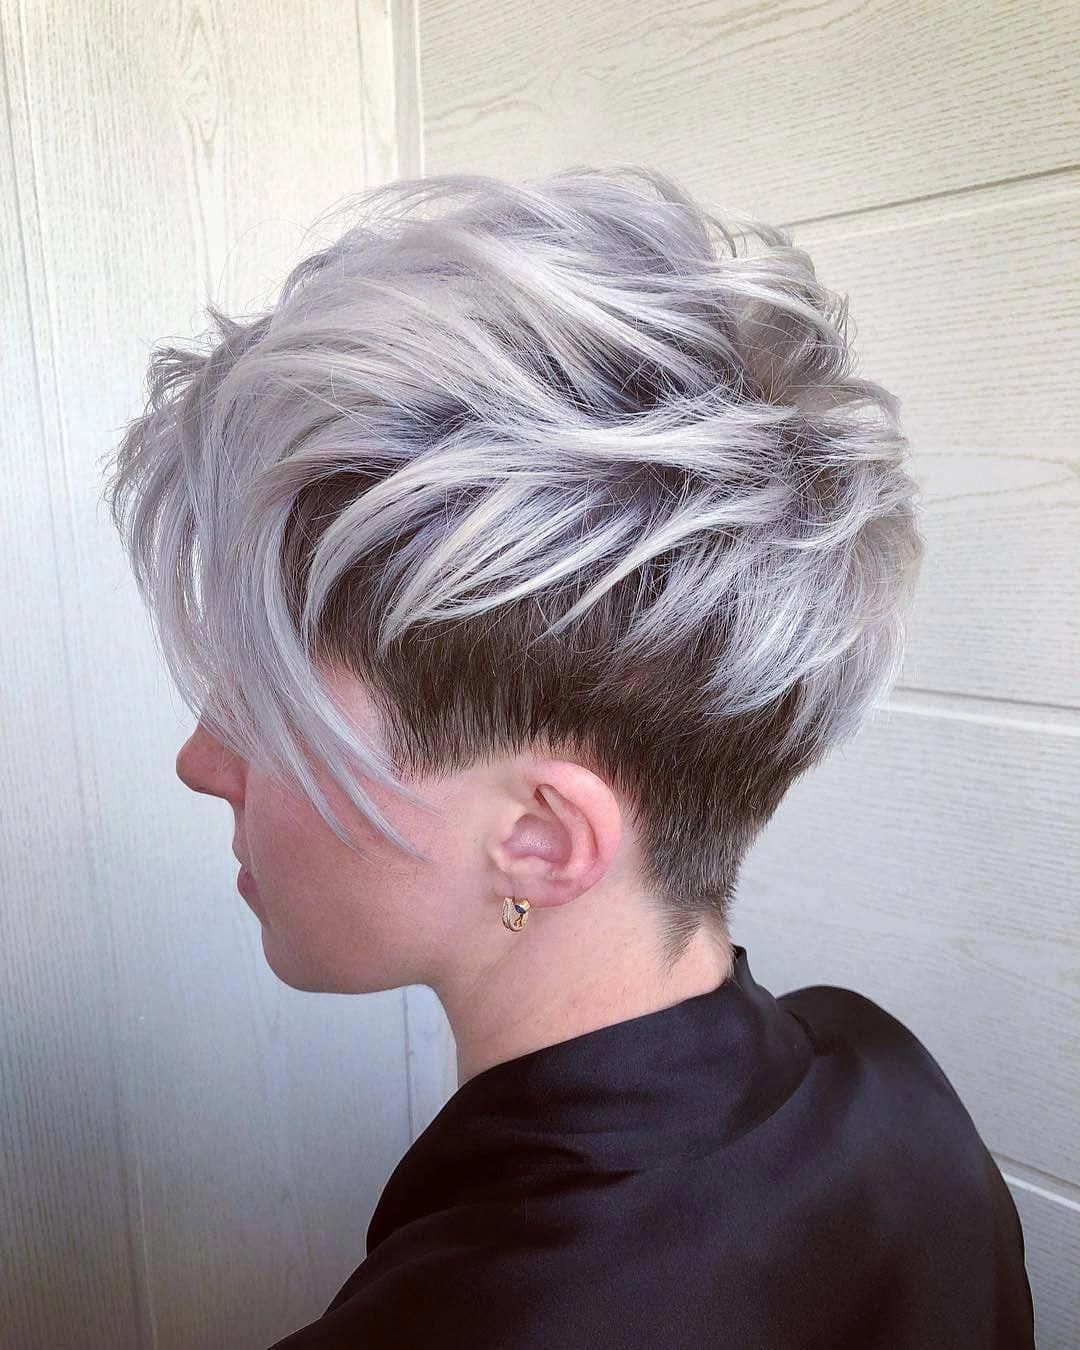 77 Pixie Cuts We Love for 2019 - Hairstyles Trends